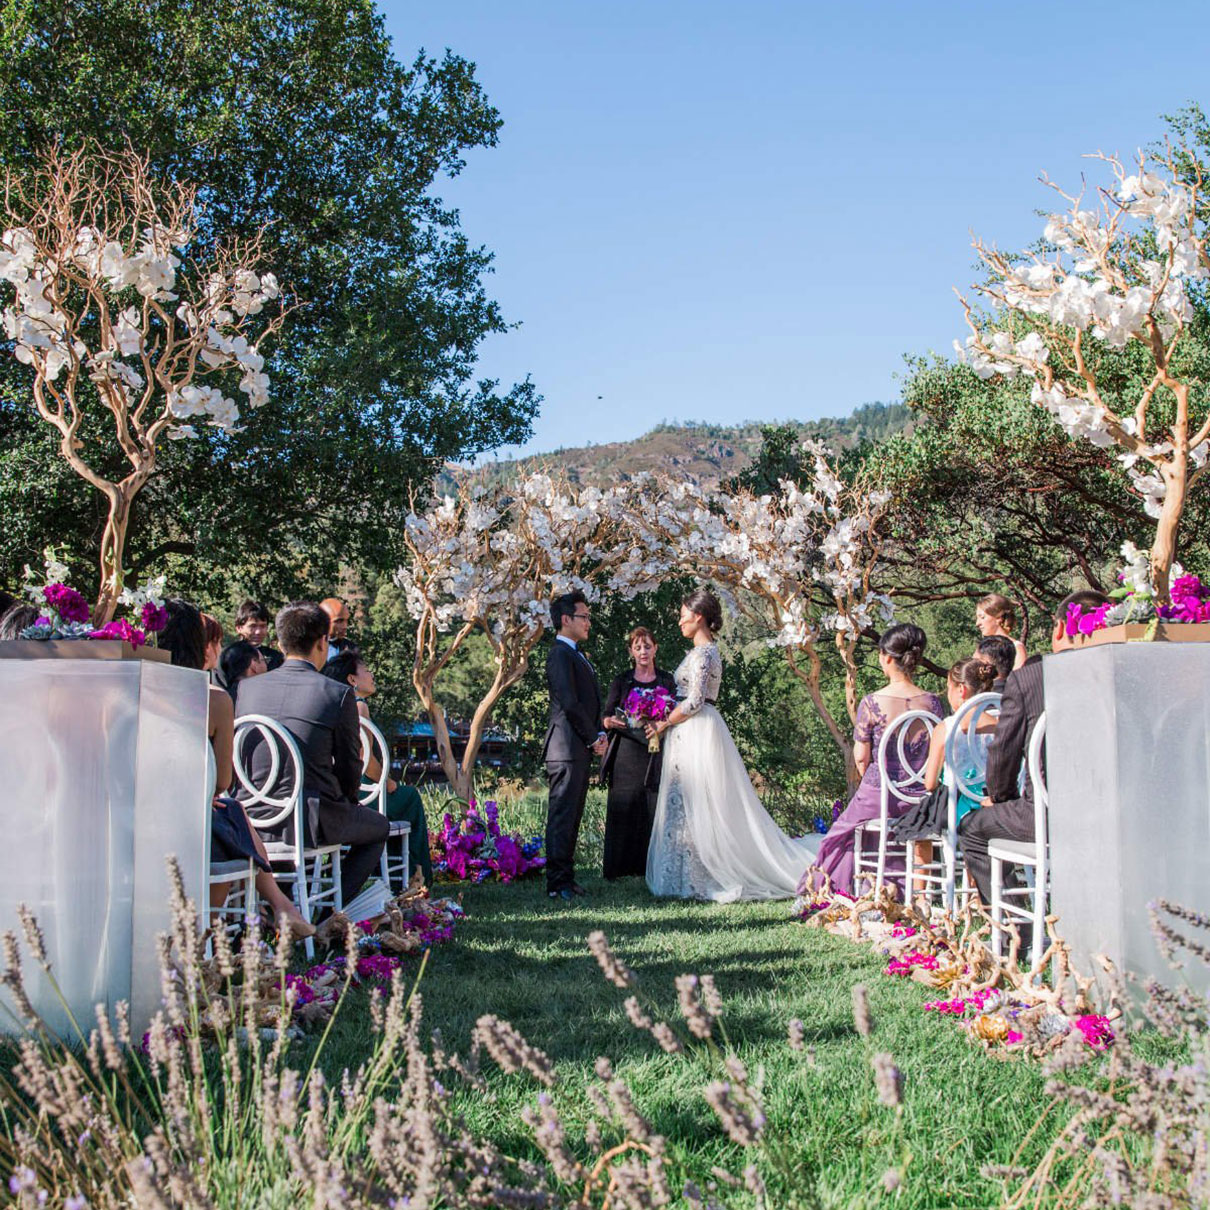 destination wedding tips to make sure youre legally married